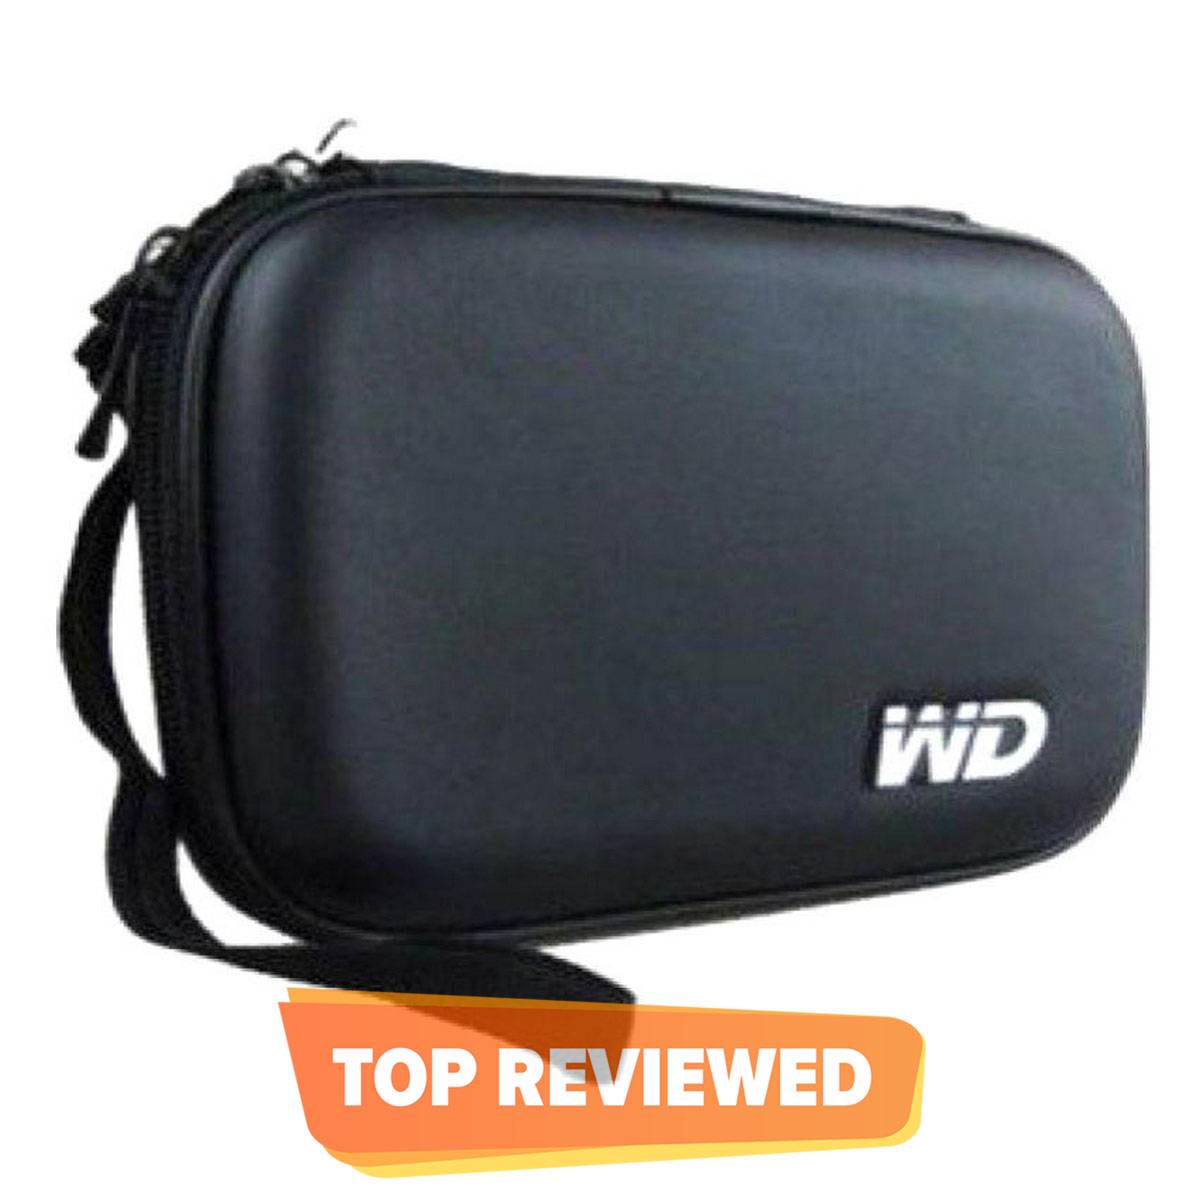 WD External Hard Disk Drive Pouch Case - 2.5 HDD Cover - Black